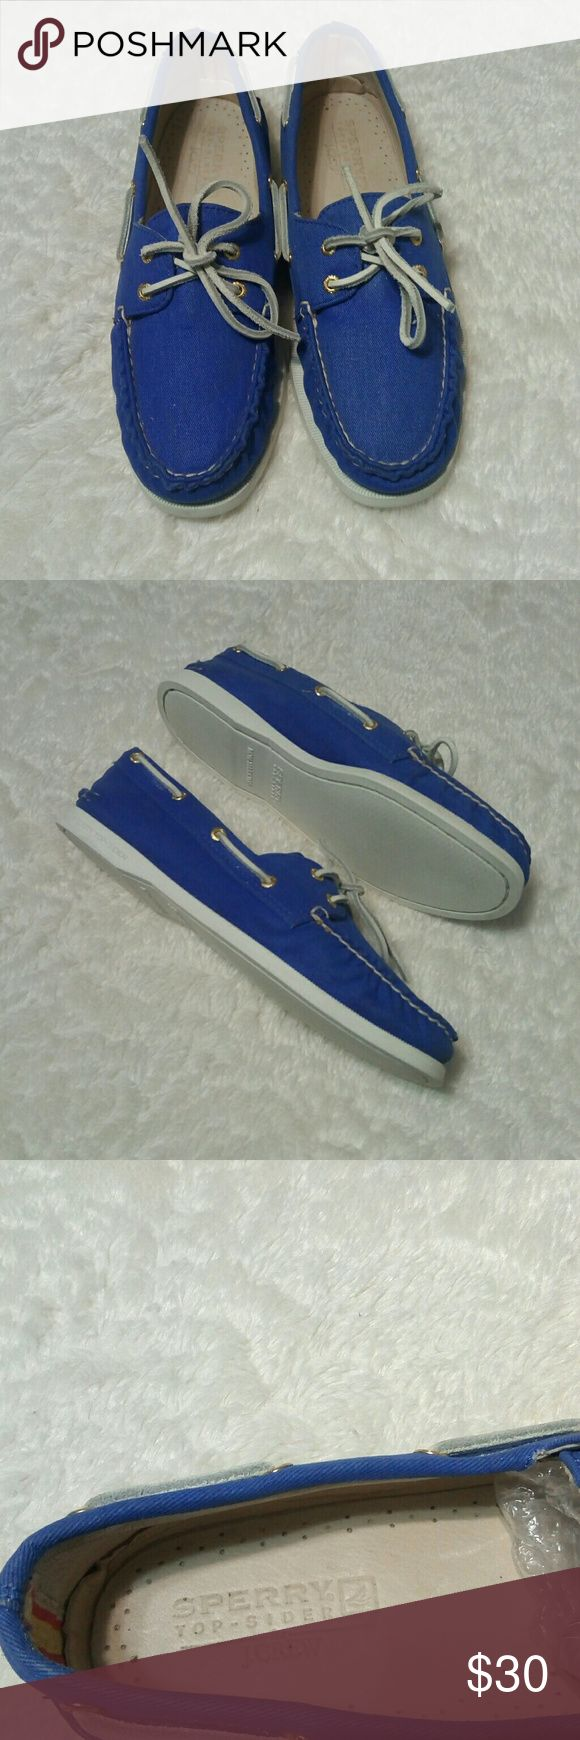 Sperry Top-Wider For J. Crew These shoes are in excellent condition. Blue fabric upper part, white soles and laces and gold eyelets. Size 9M Sperry Top-Sider Shoes